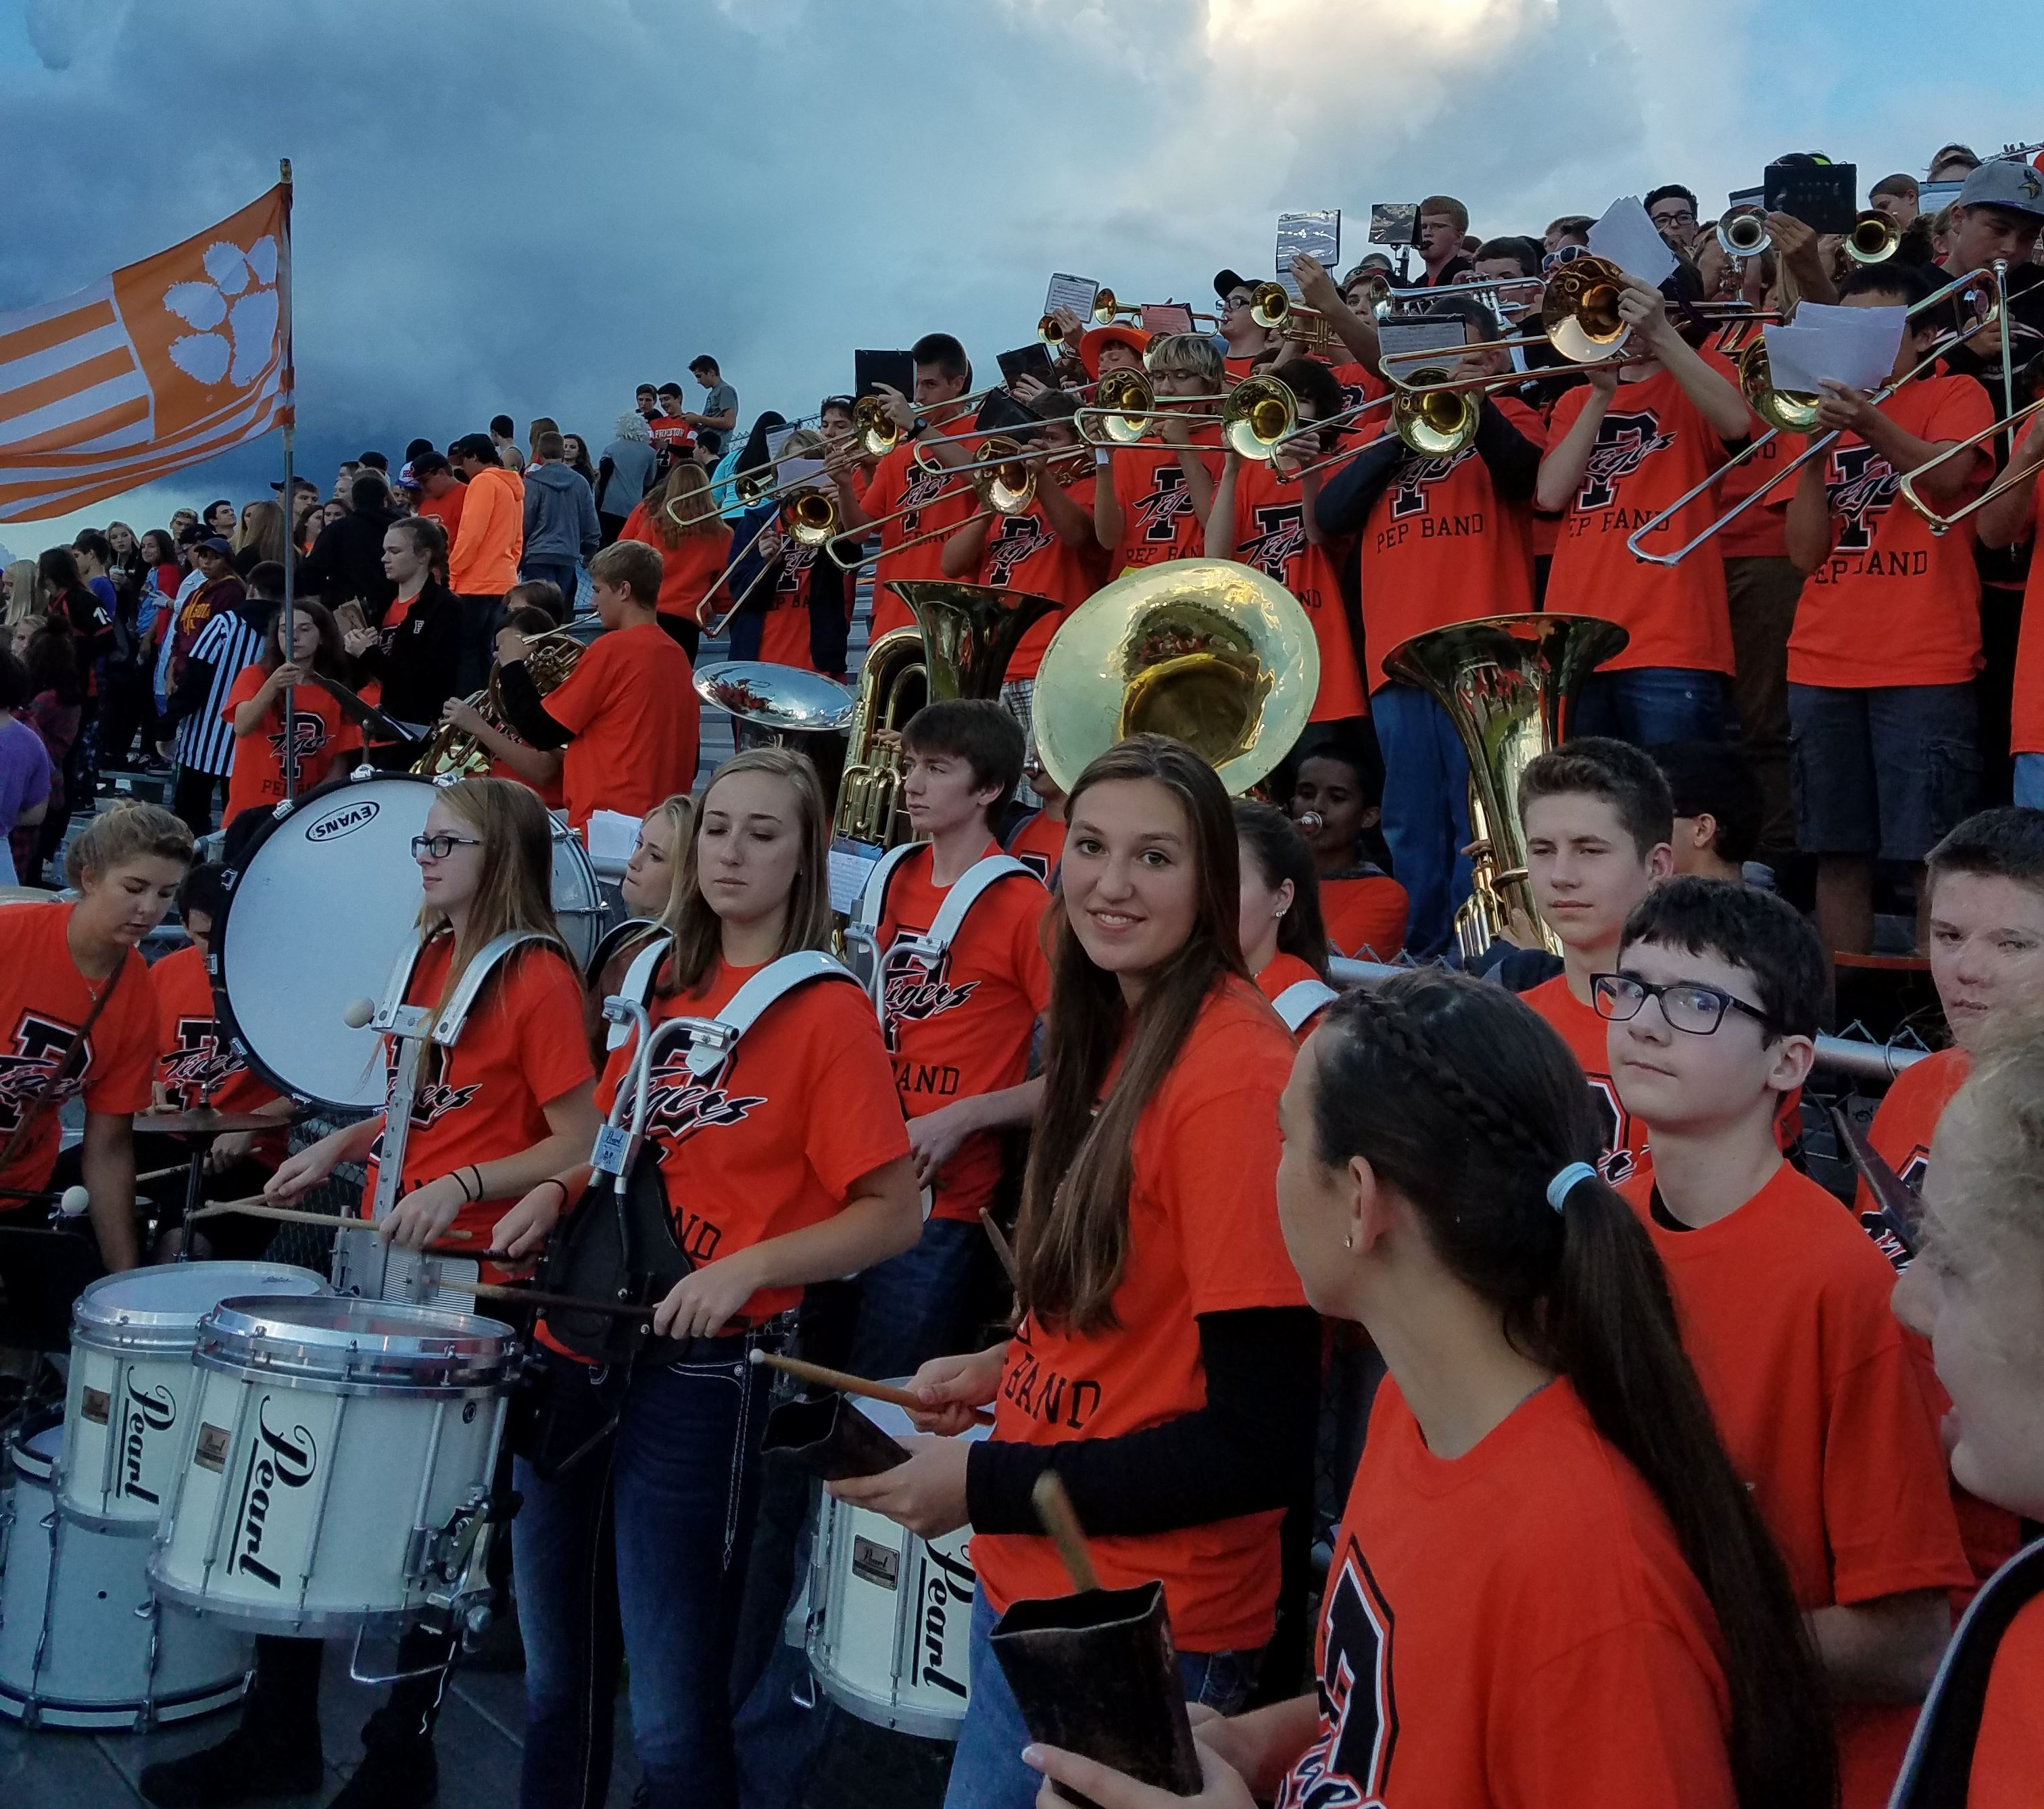 PHS Pep band in orange shirts